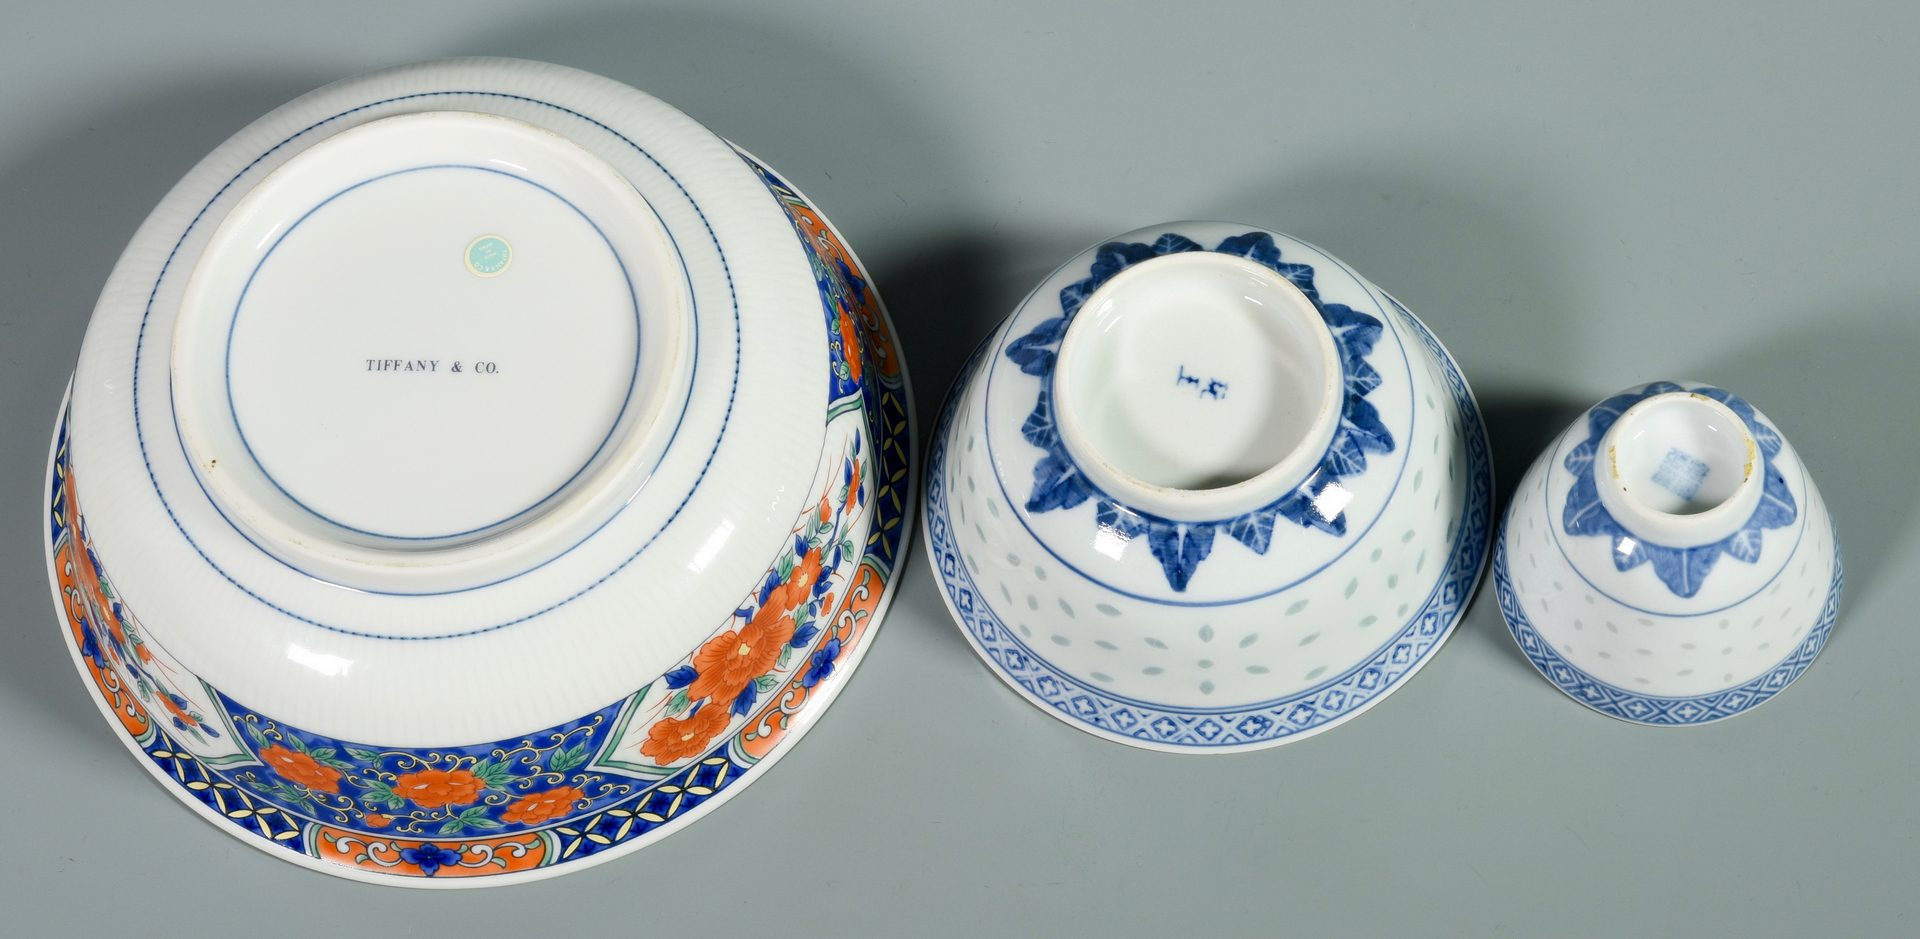 Lot 346: Grouping of Asian Porcelain & Pottery Items, 13 pcs.